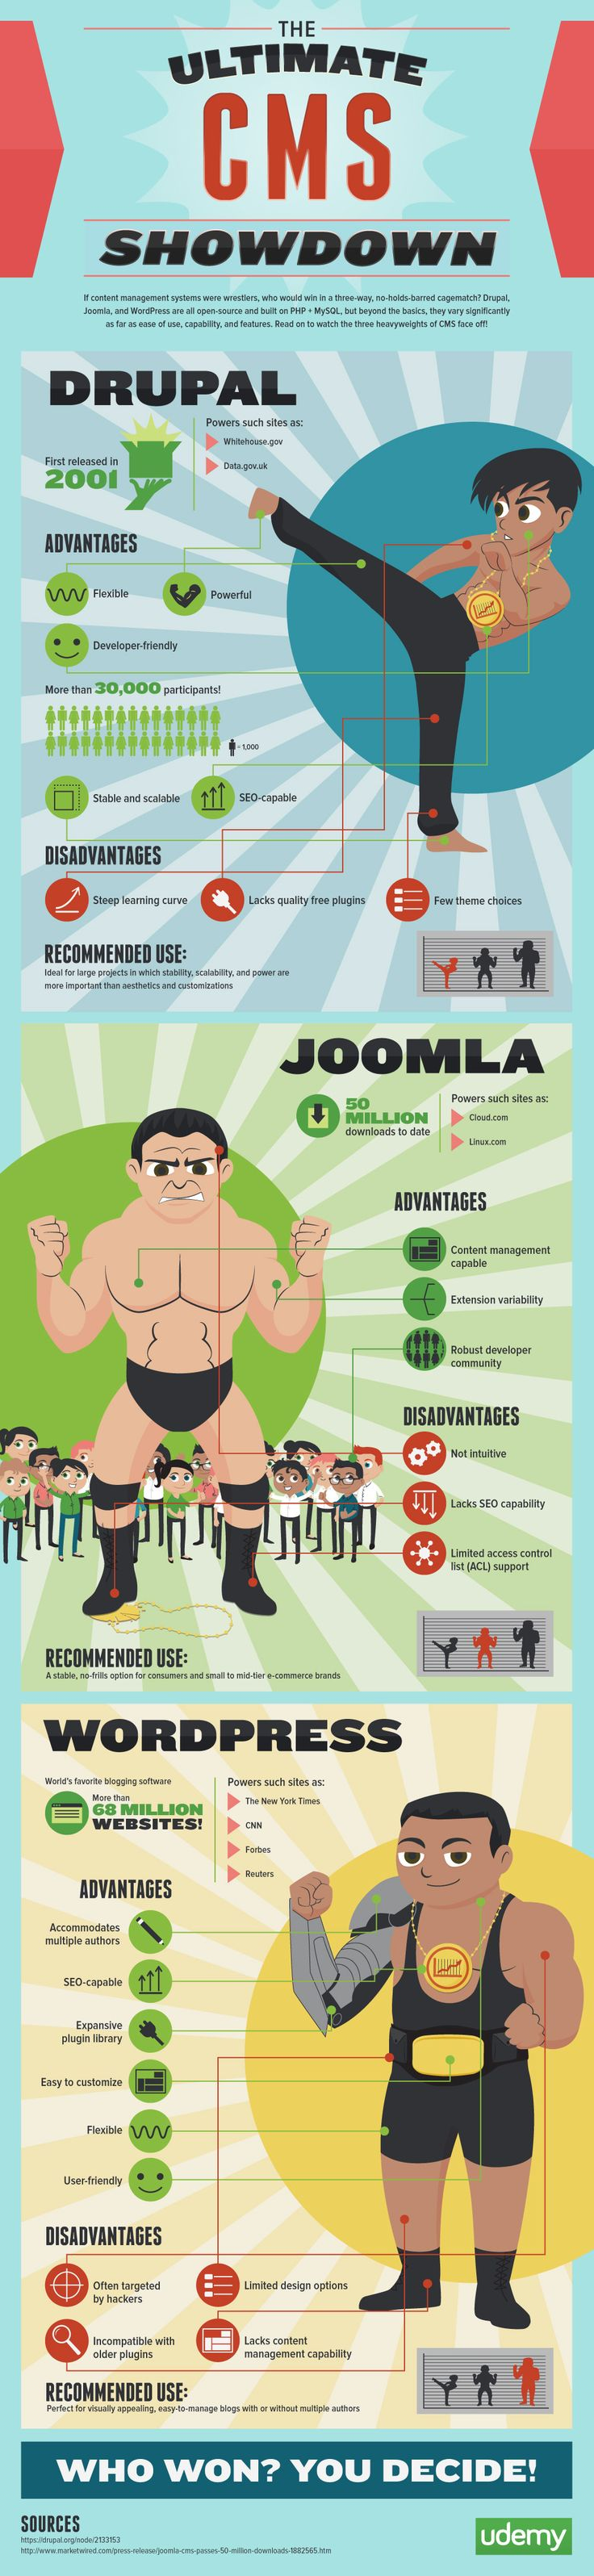 A pretty fair look at pros and cons of Drupal, Joomla and WordPress #Drupal #Joomla #WordPress What's your take?